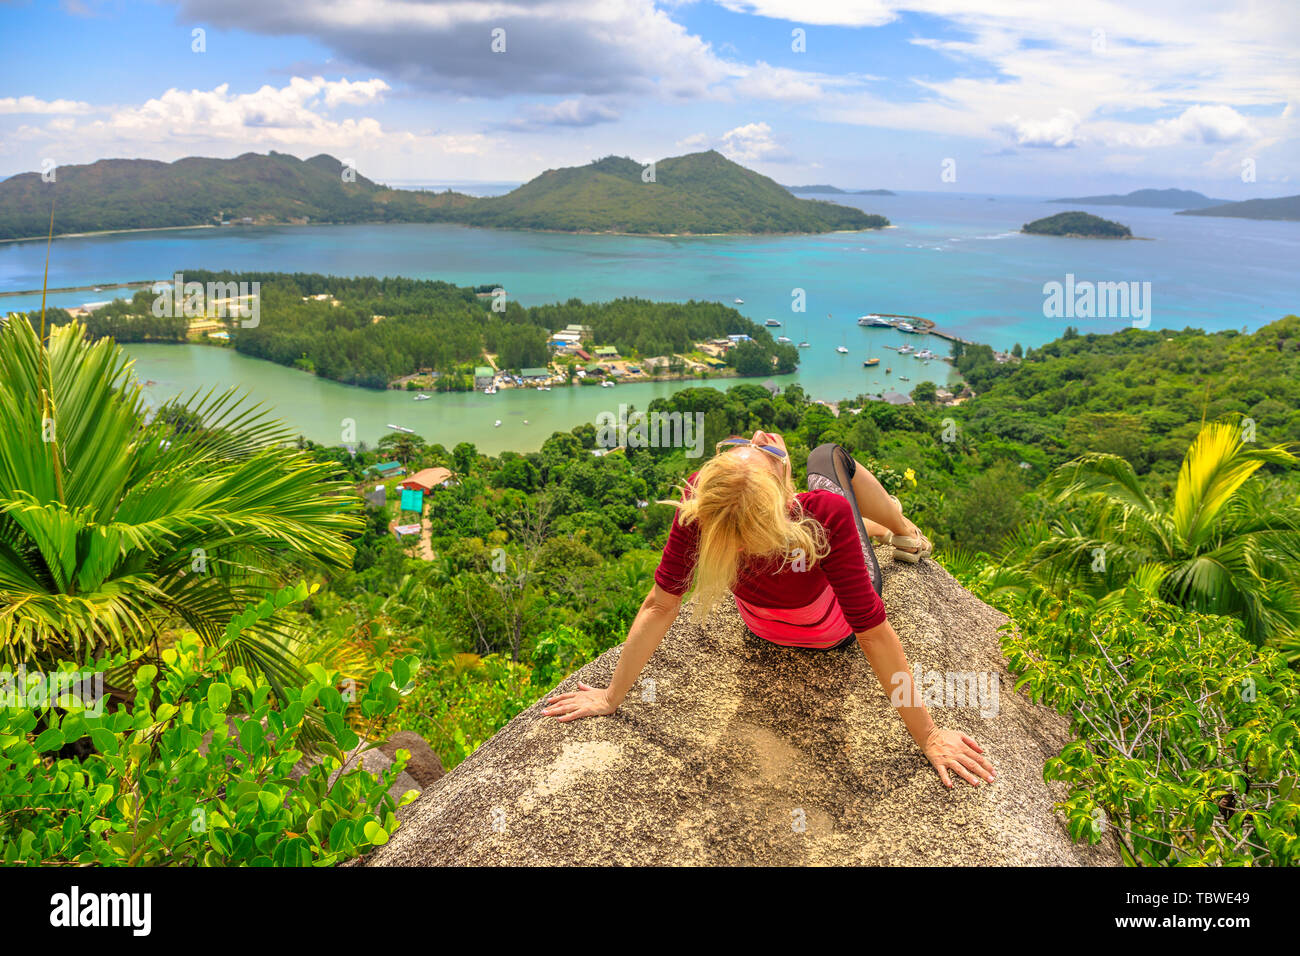 Tourist woman relaxing at lookout of Praslin after trekking inside Reserve of Fond Ferdinand. Scenic view from top view of Praslin on Bay of St. Anne - Stock Image